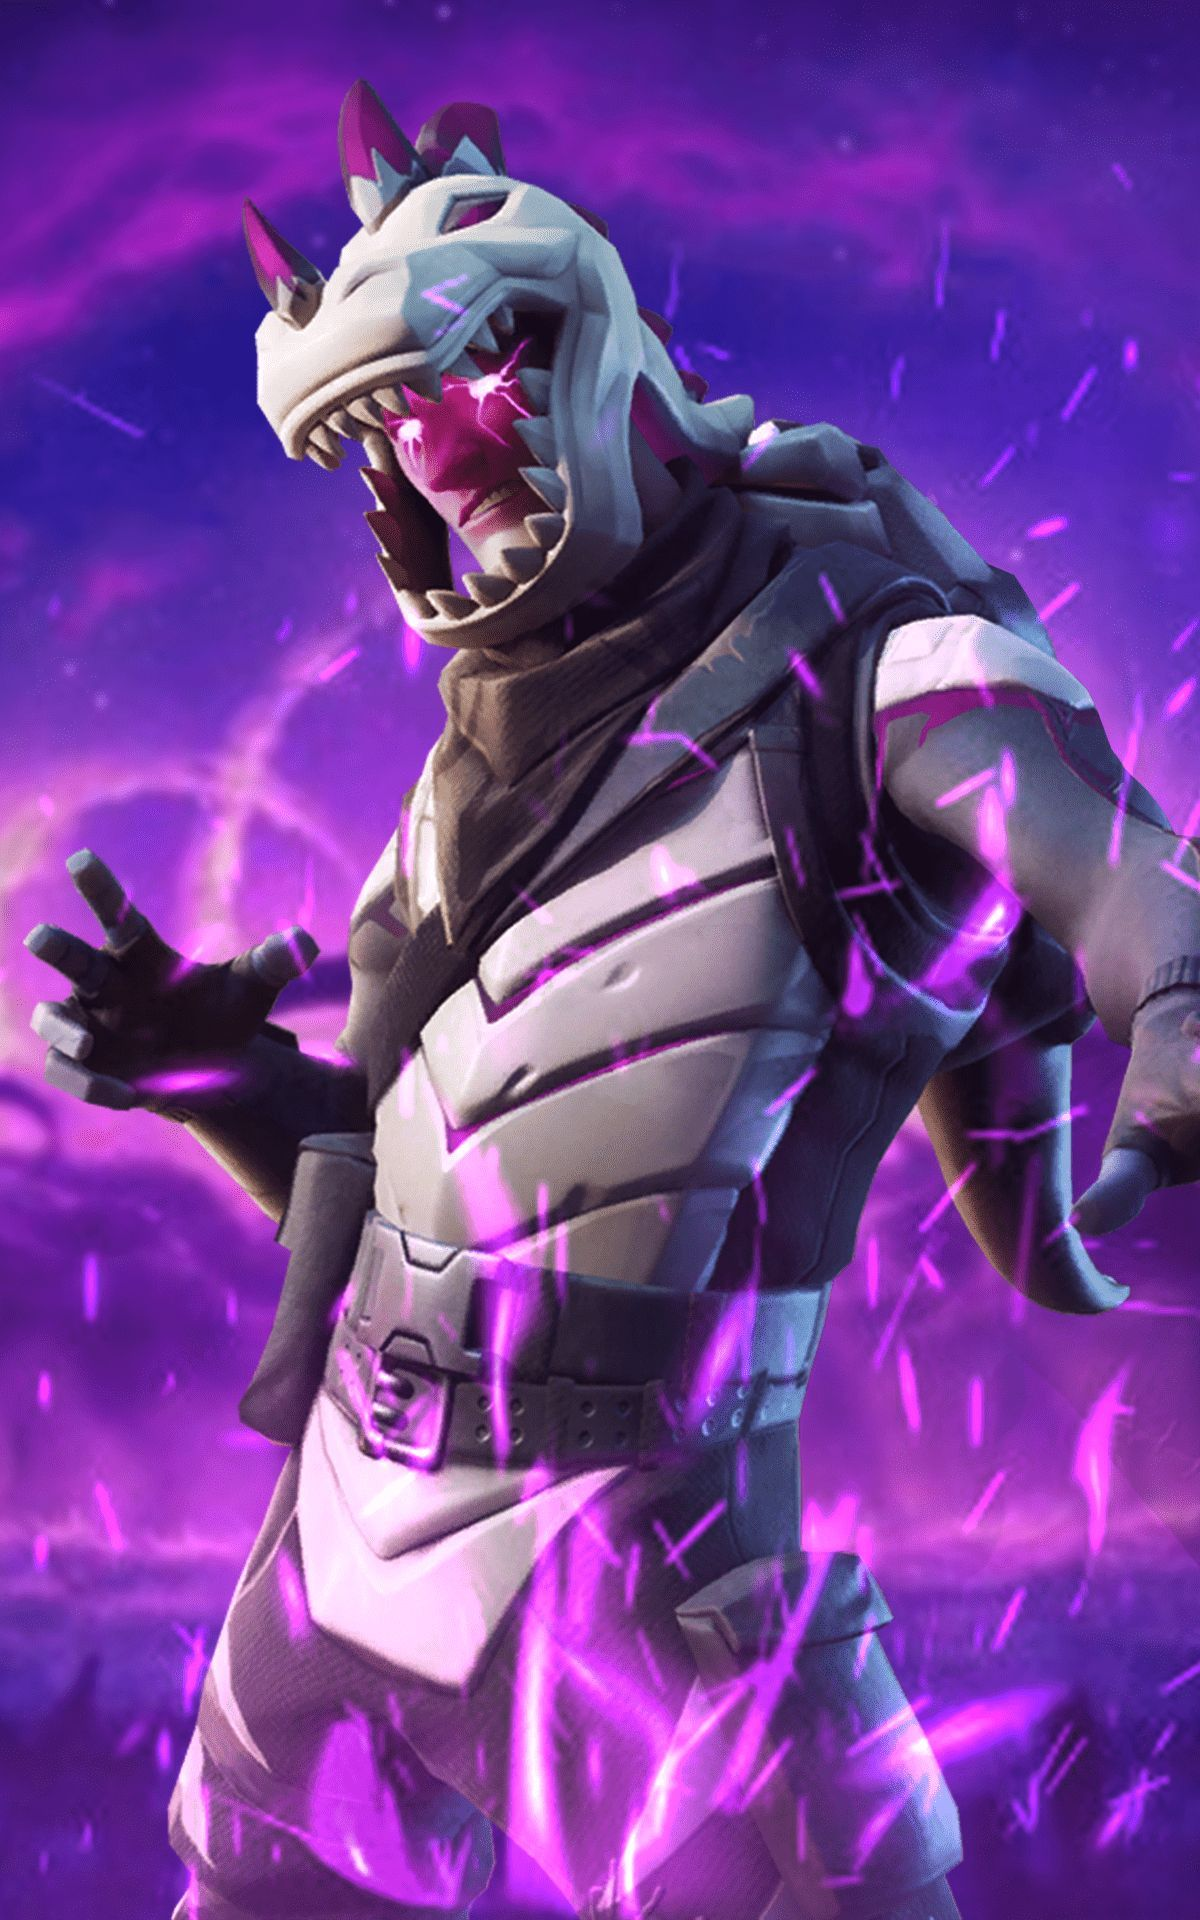 Fortnite Wallpapers Cool Backgrounds Good Skin Cool Pictures